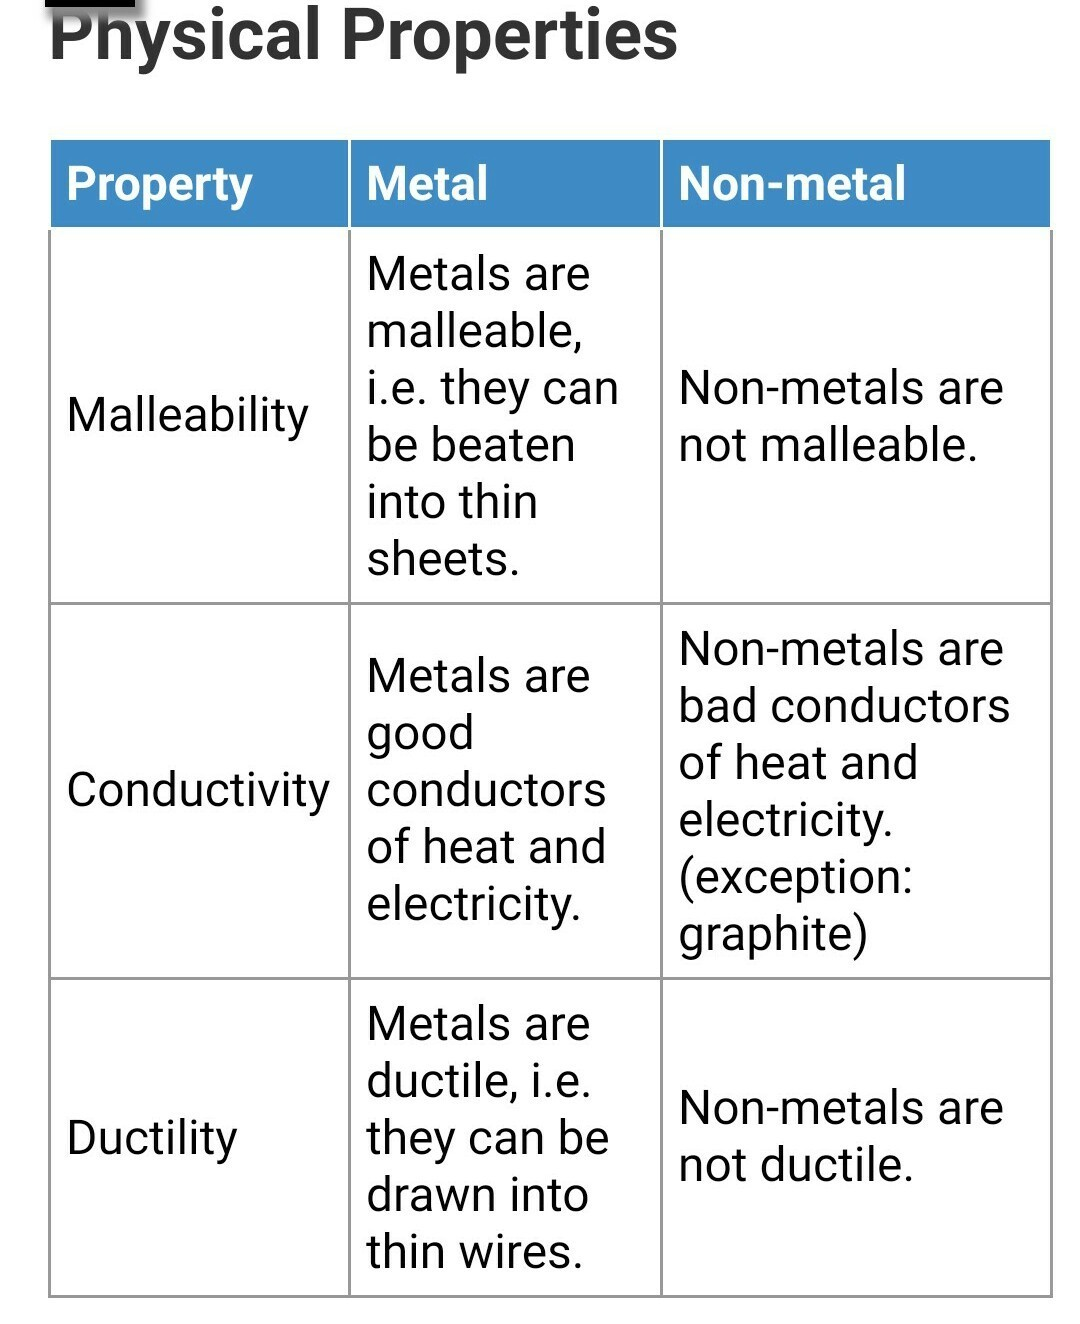 Differentiate Between Metals And Nonmetals On The Basis Of